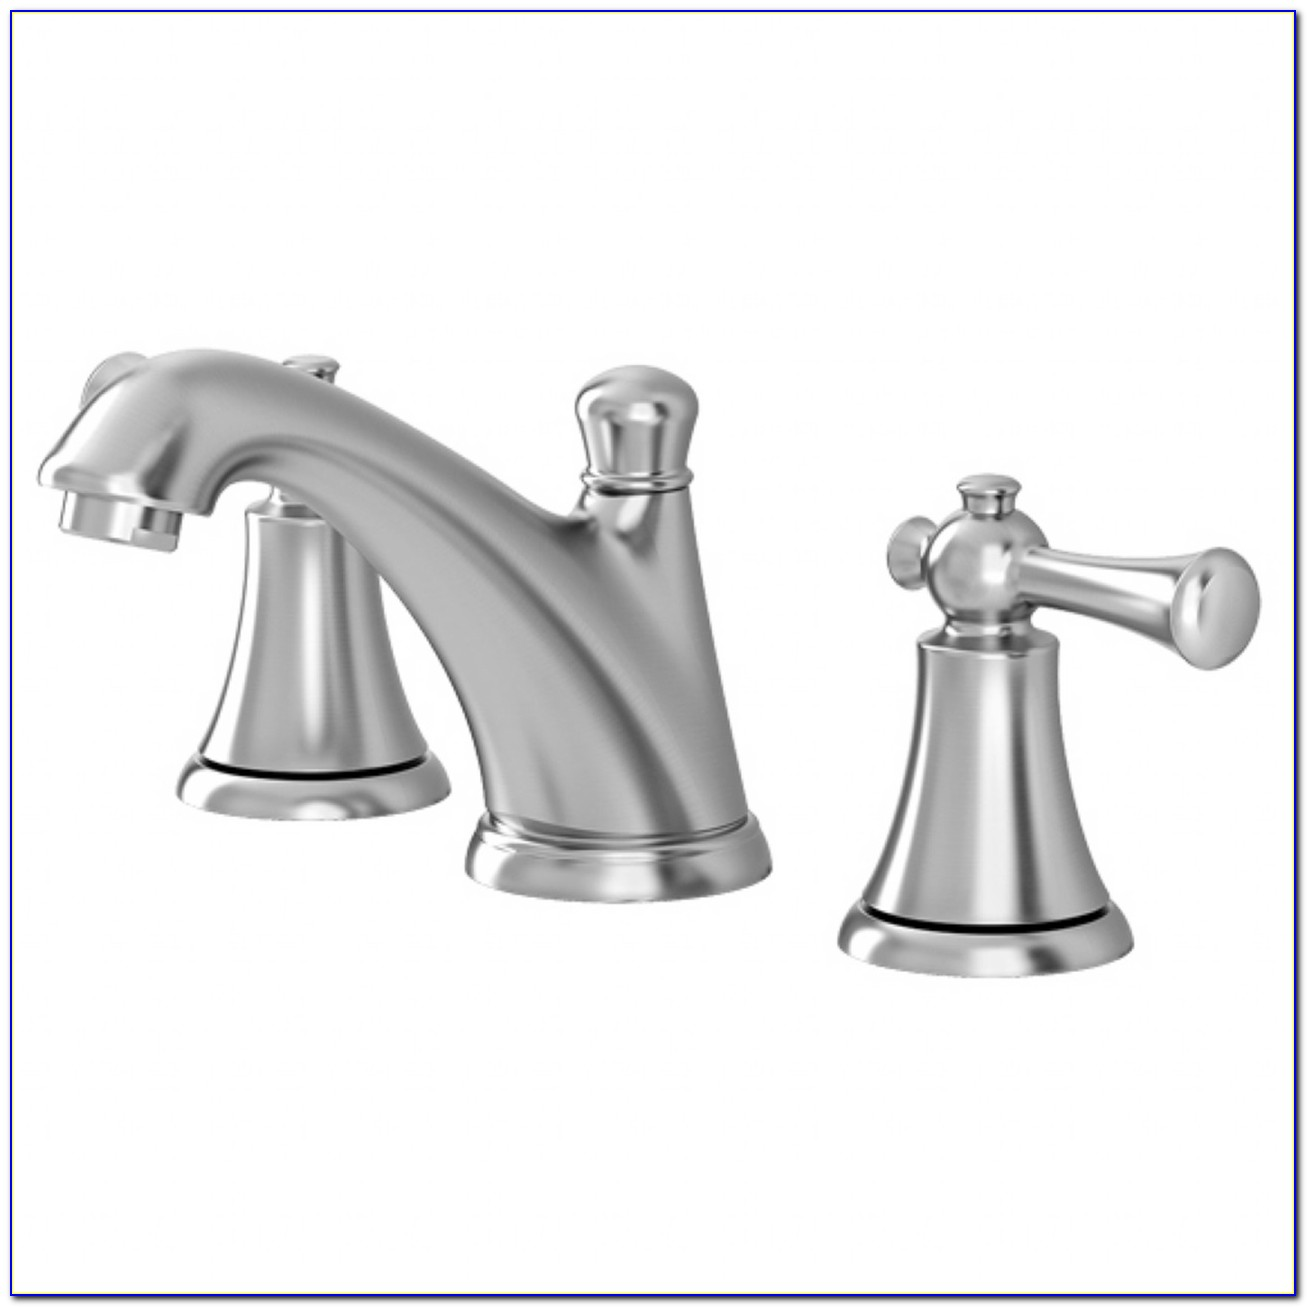 Bathroom Faucets 8 Inch Spread